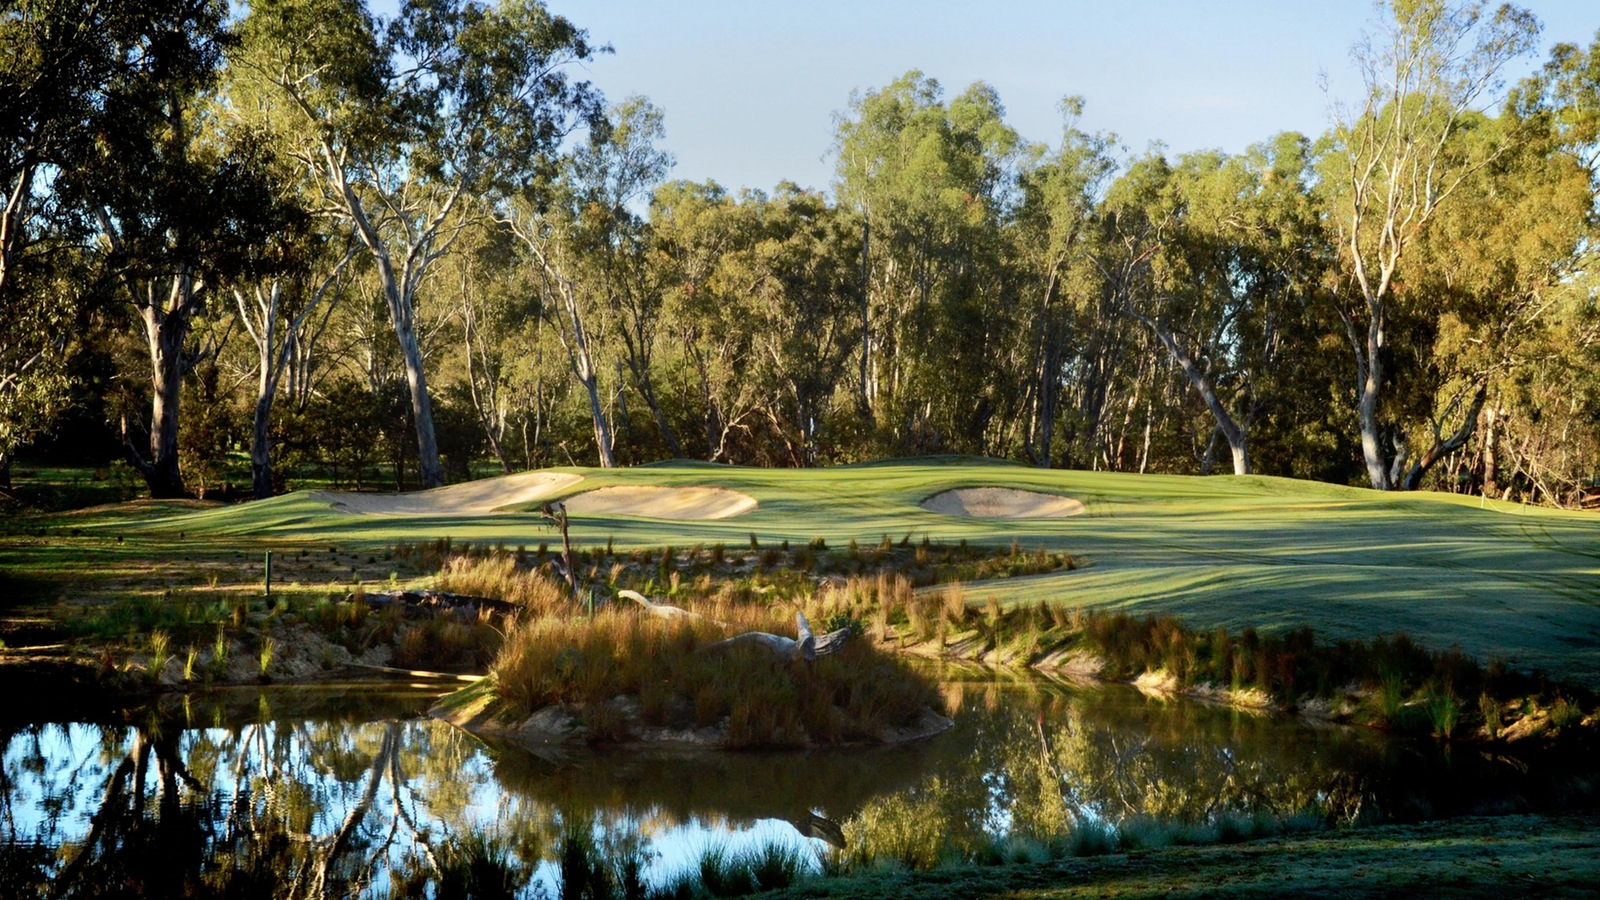 The new 3rd green on the Murray course at Yarrawonga